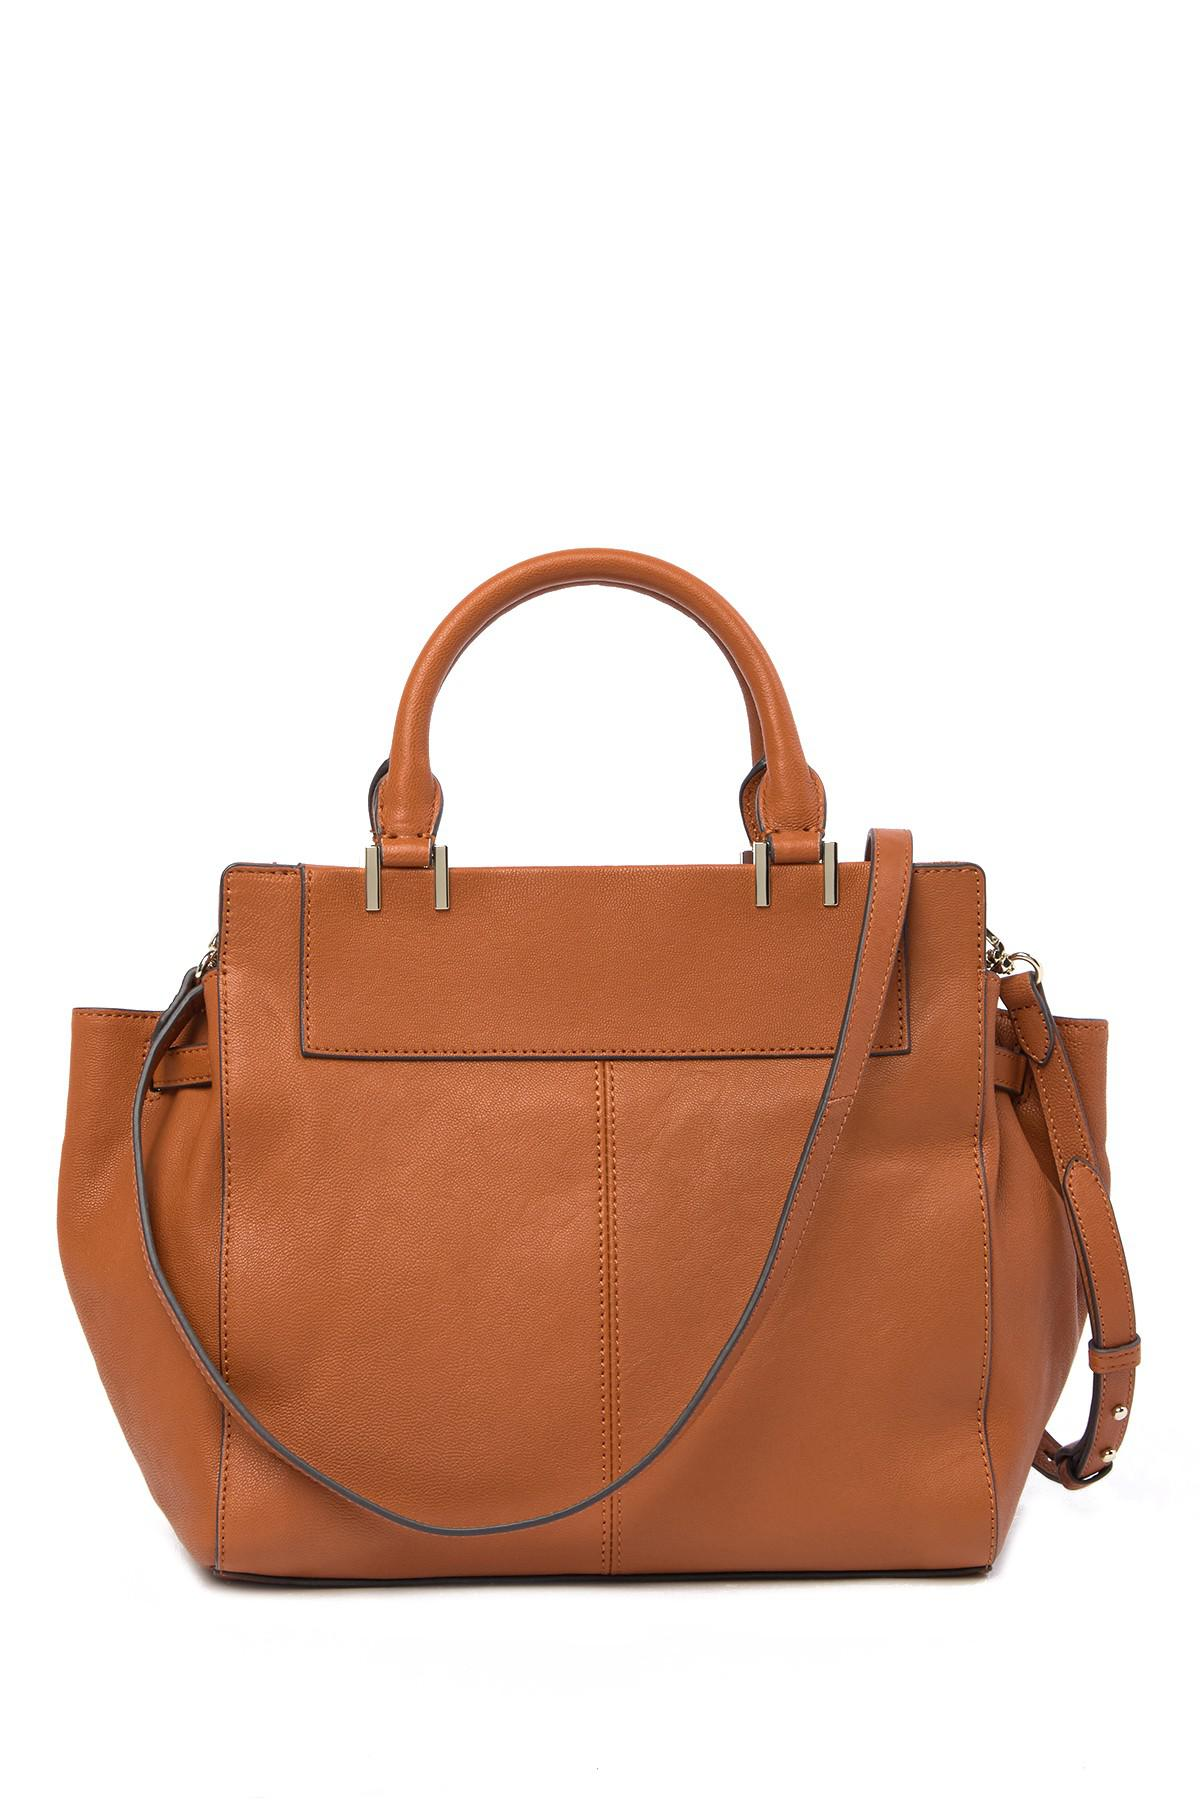 ad2c5a3fde46 Lyst - Vince Camuto Ayla Leather Satchel in Brown